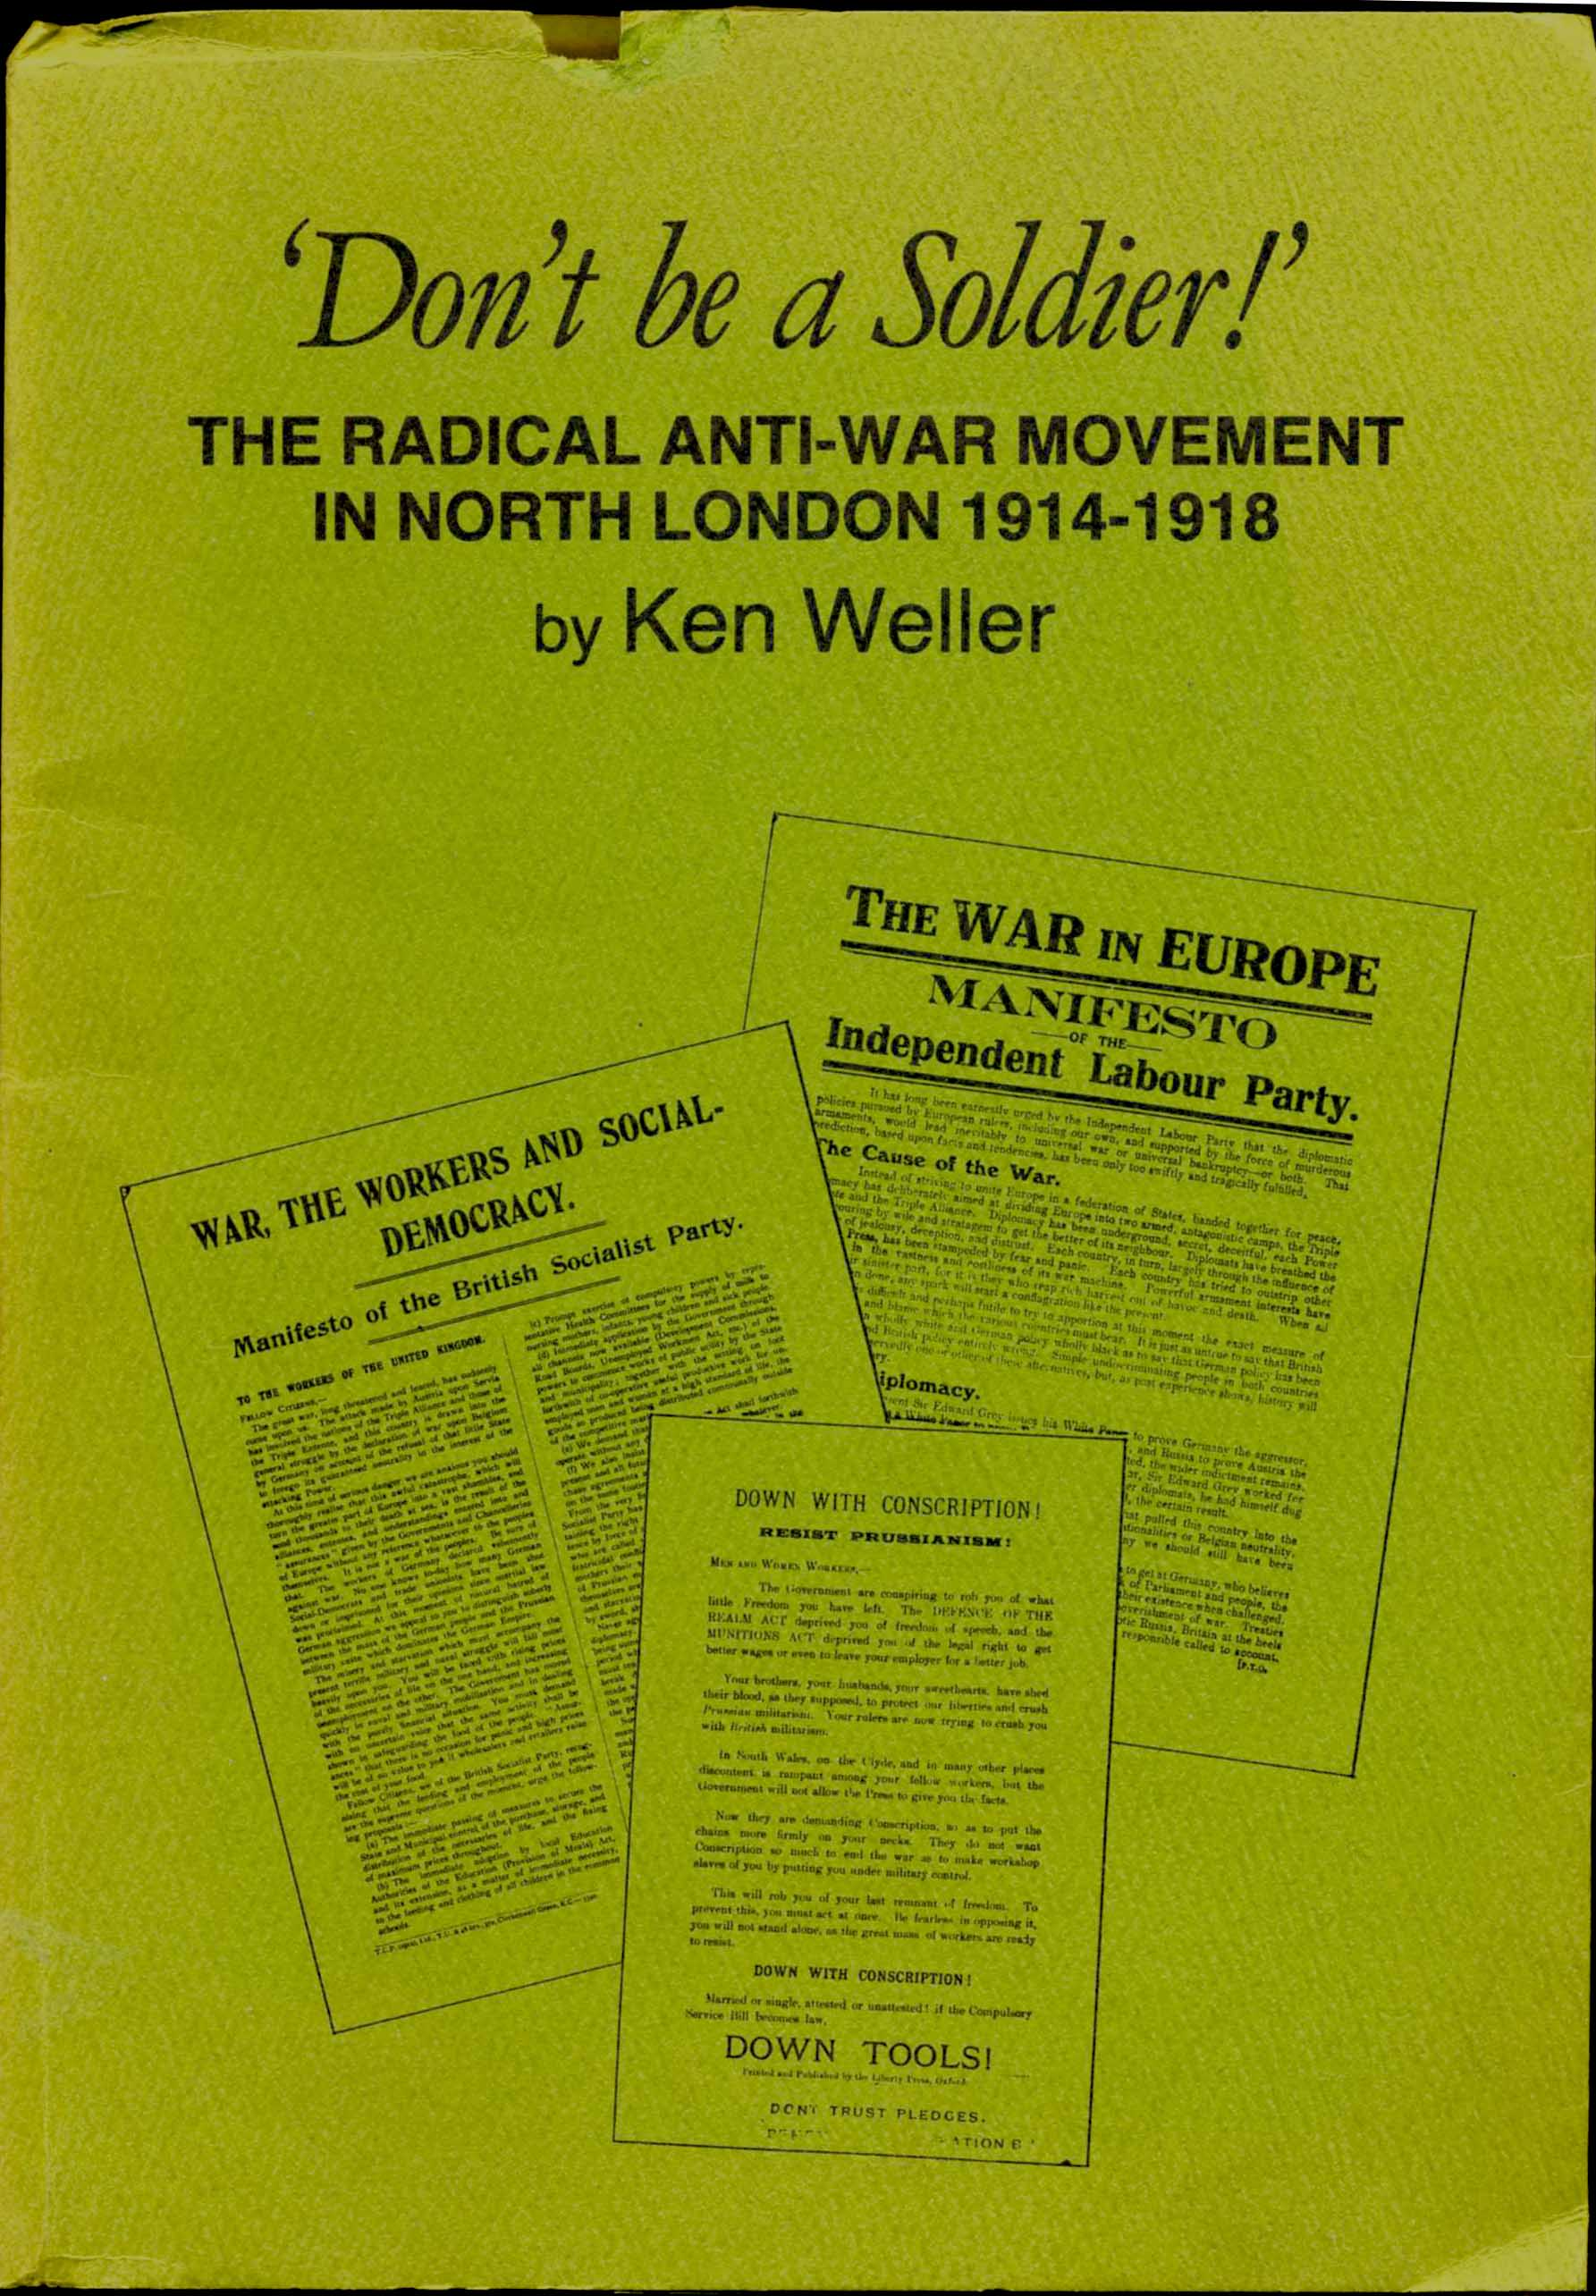 Don't be a Soldier. The Radical Anti-War Movement in North London 1914-1918